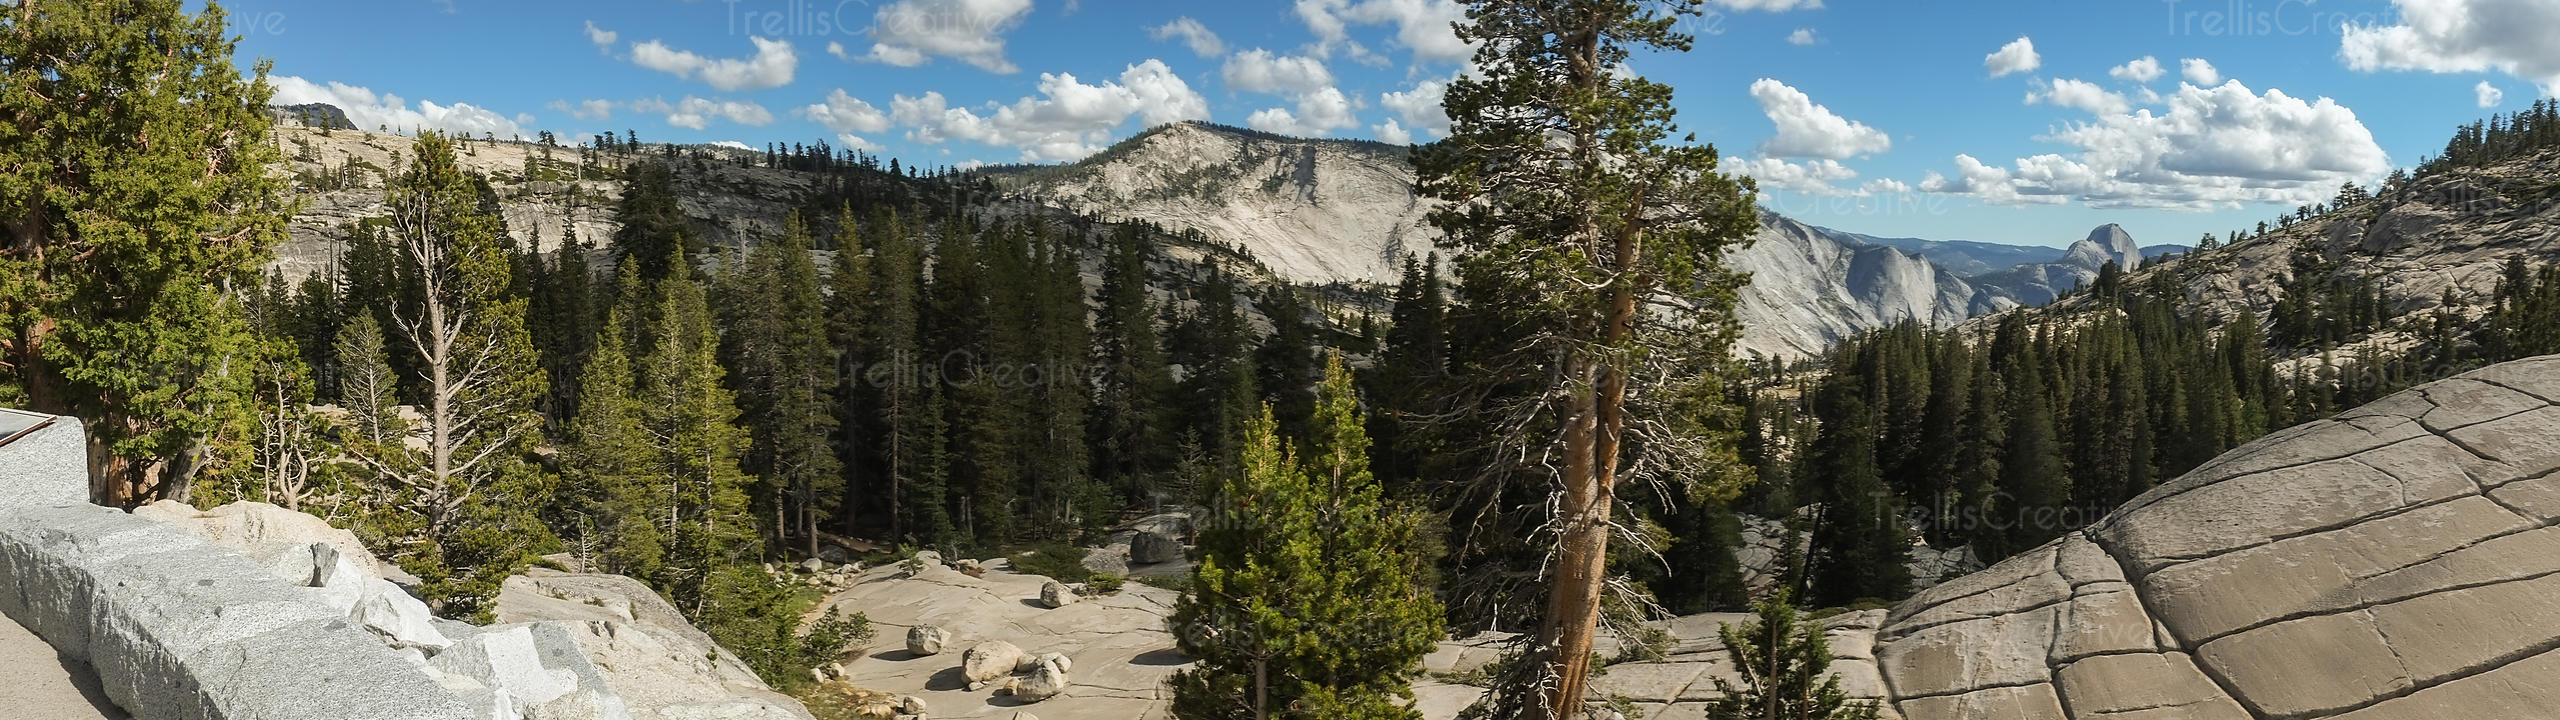 Panorama of the rocky mountains and trees in Yosemite National Park, USA